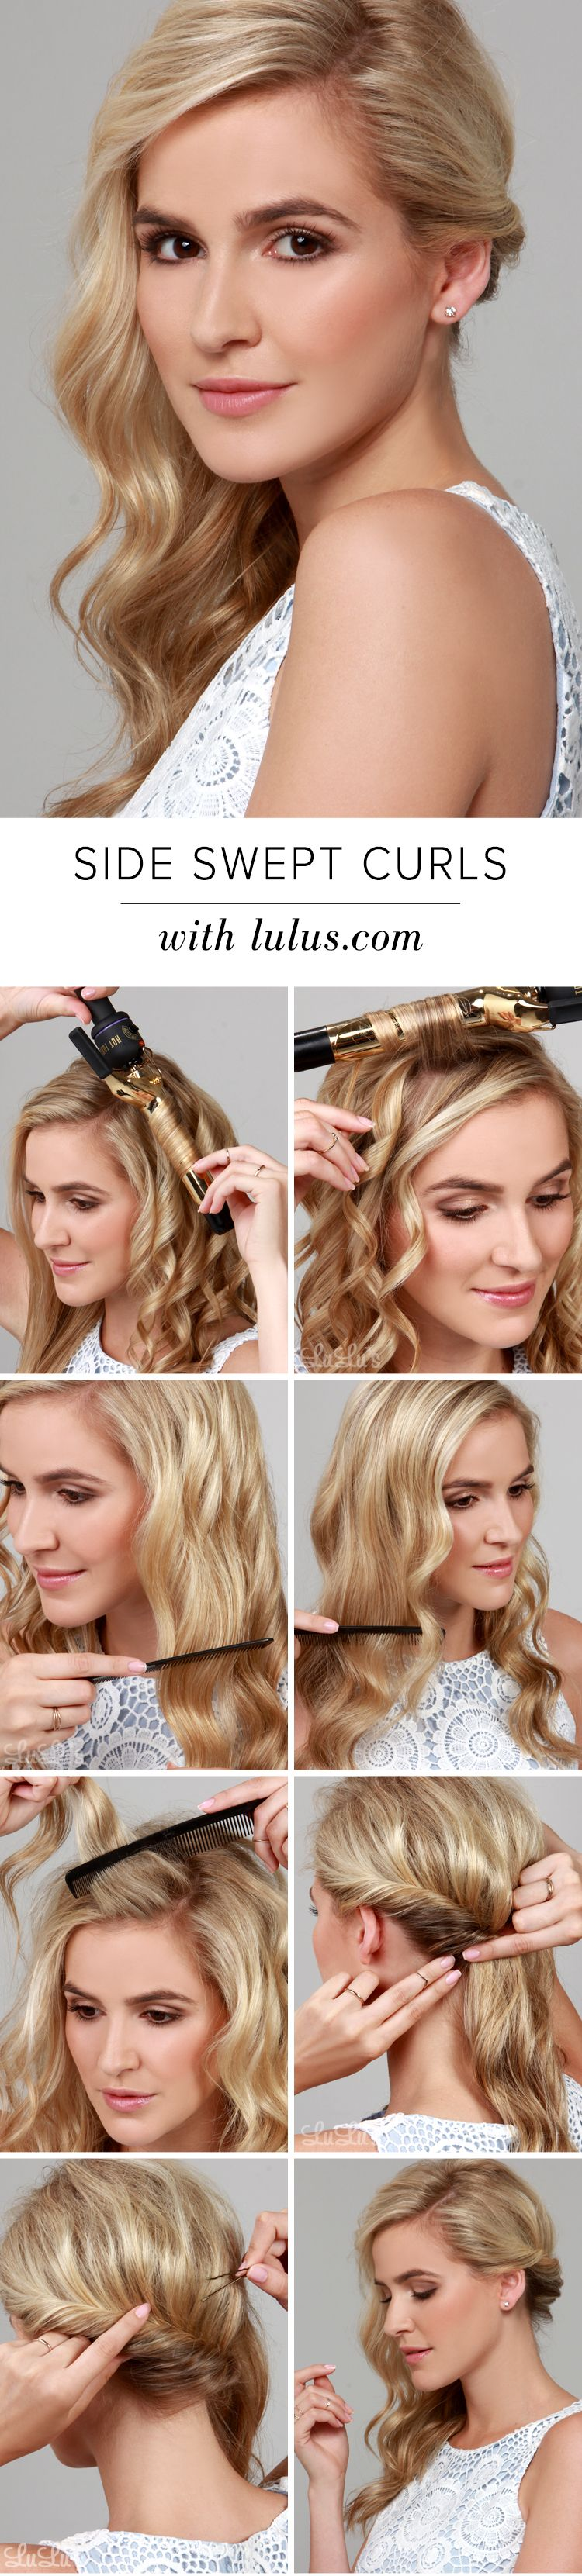 LuLu*s How-To: Side Swept Curls Hair Tutorial at LuLus.com!